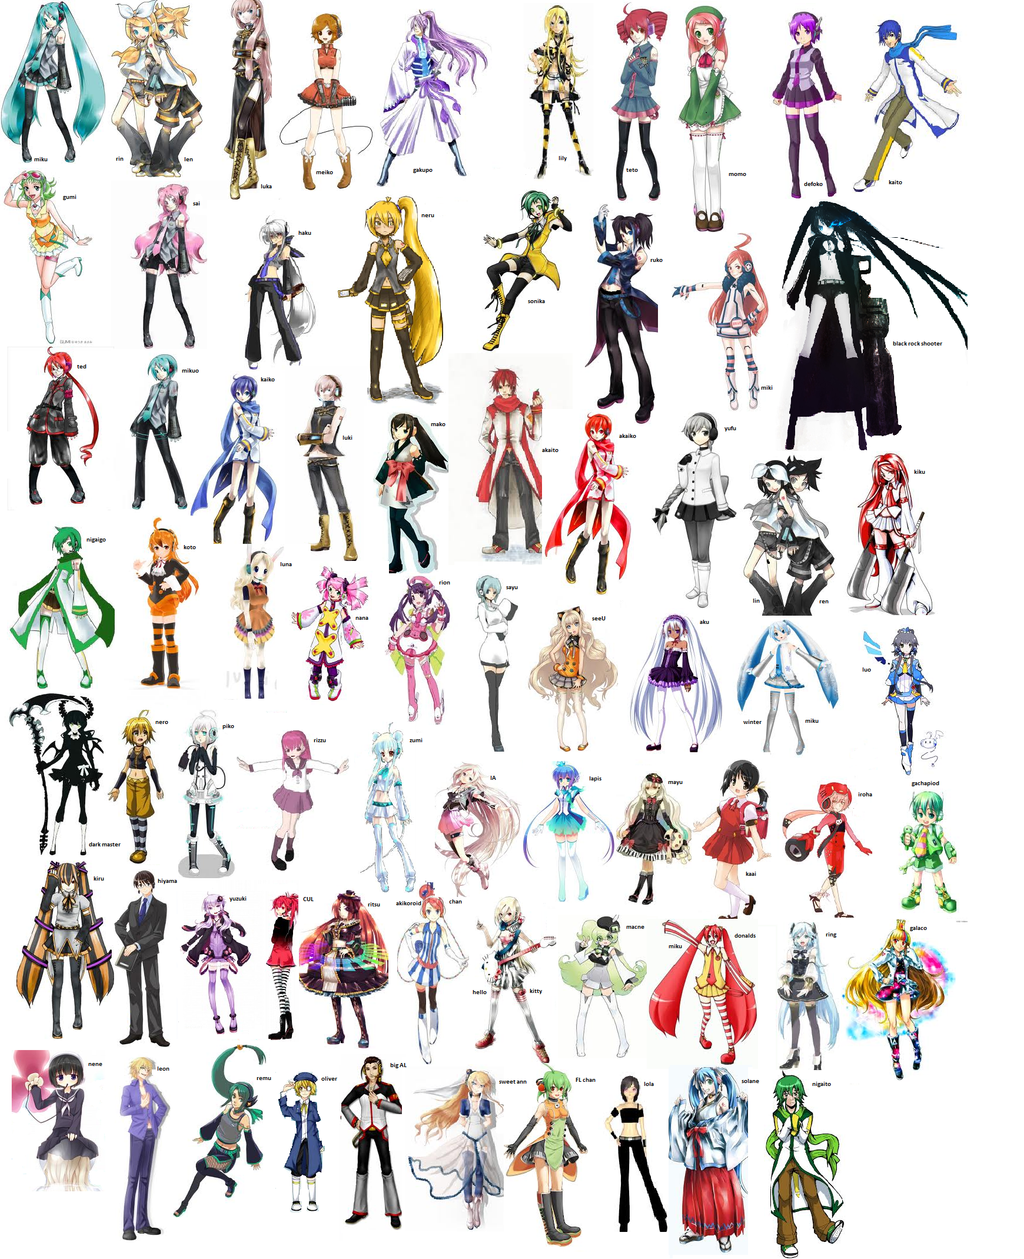 Vocaloid Characters List Names | www.imgkid.com - The ... Vocaloid Characters Name